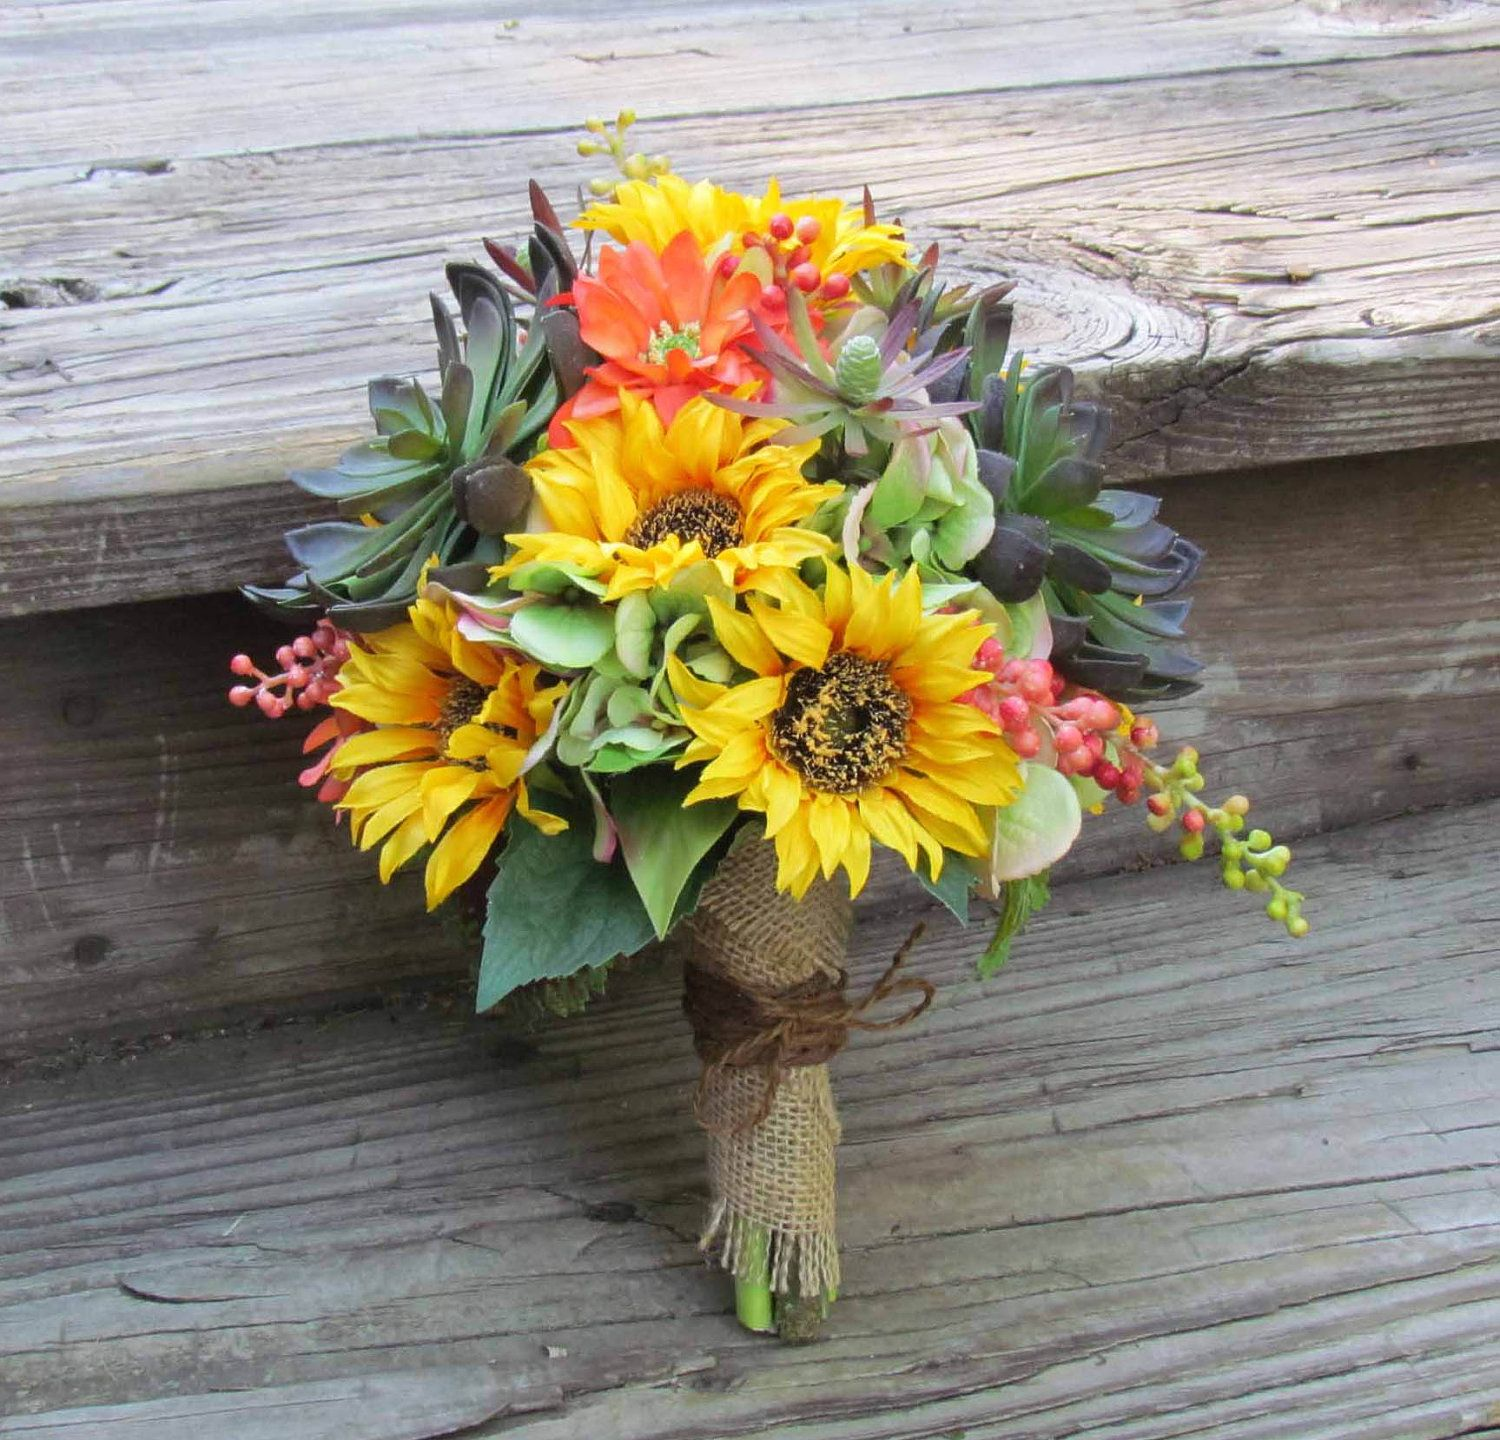 Fall Wedding Boutonniere Ideas: Sunflower & Succulents Fall Wedding Bouquet With